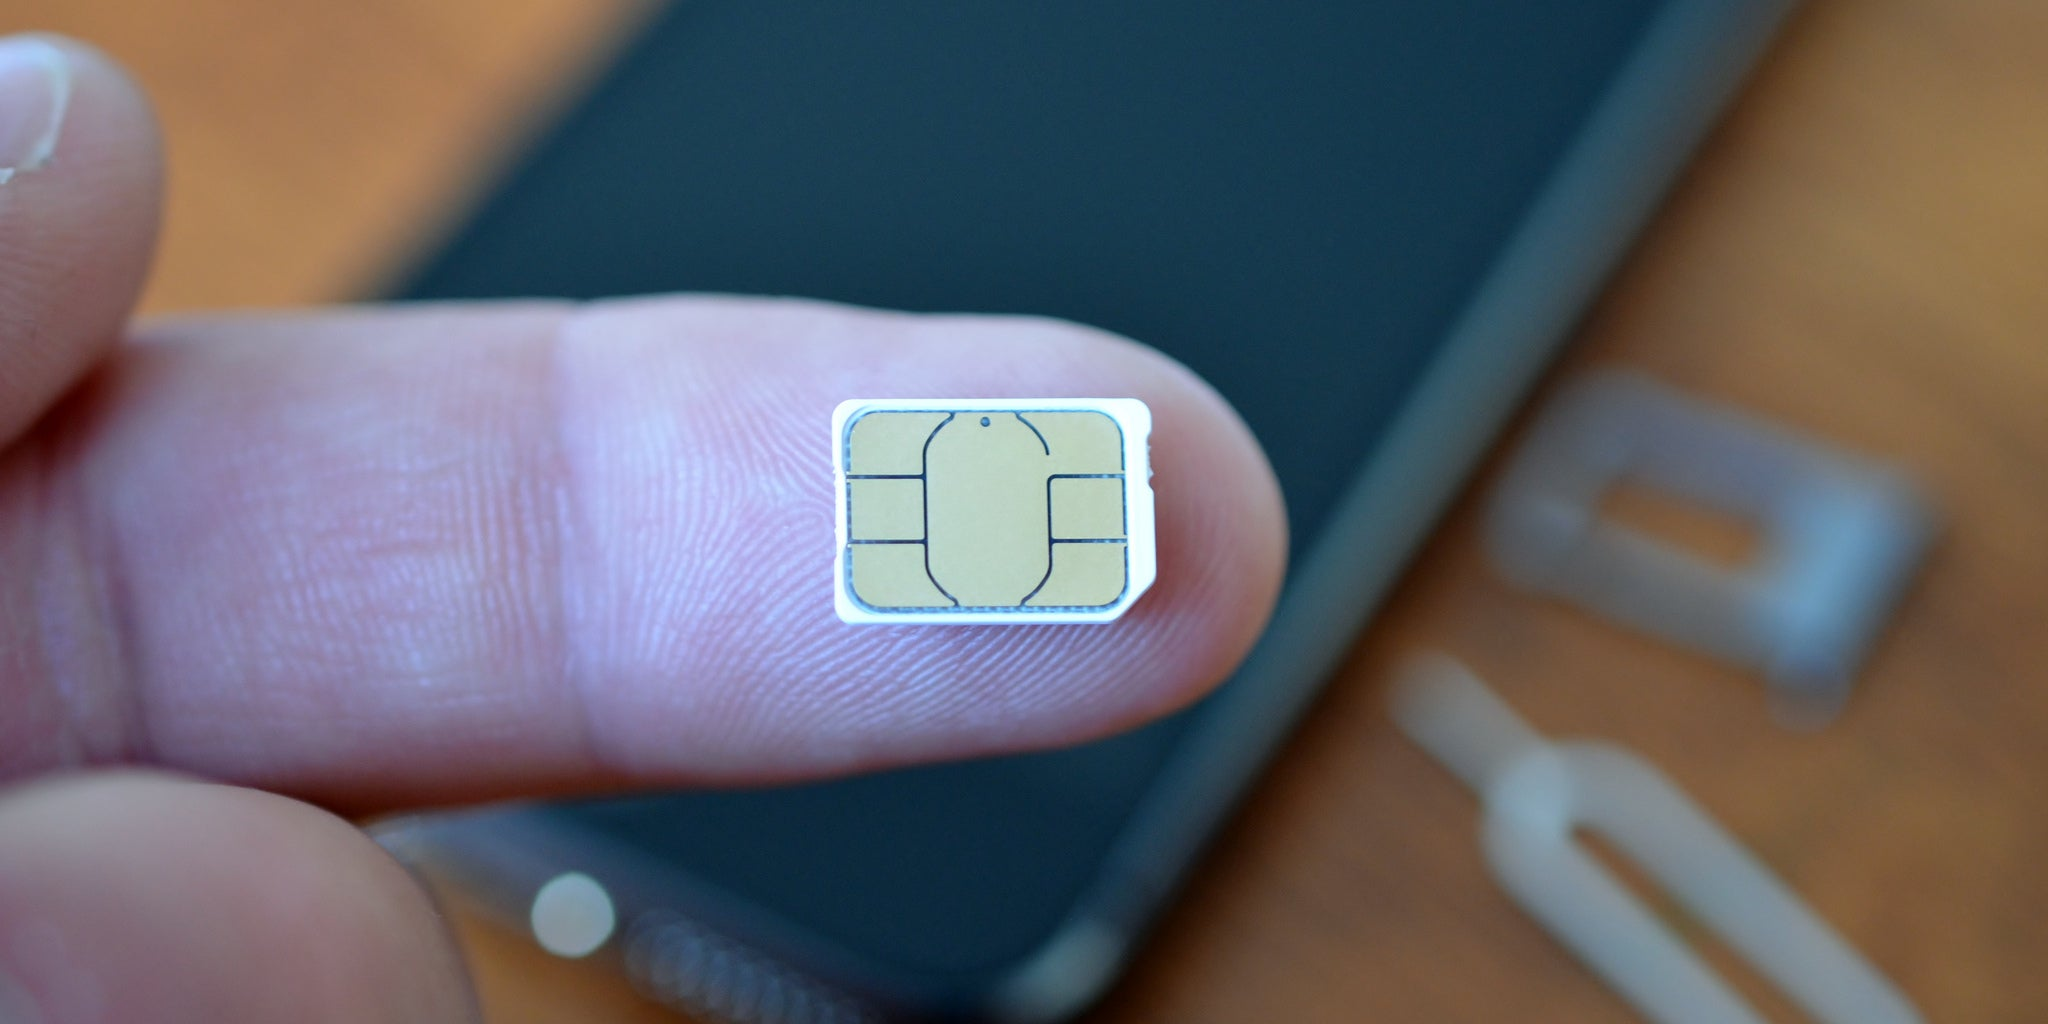 Microsoft's Making Its Own SIM Card to Provide Contract-less Cellular Data